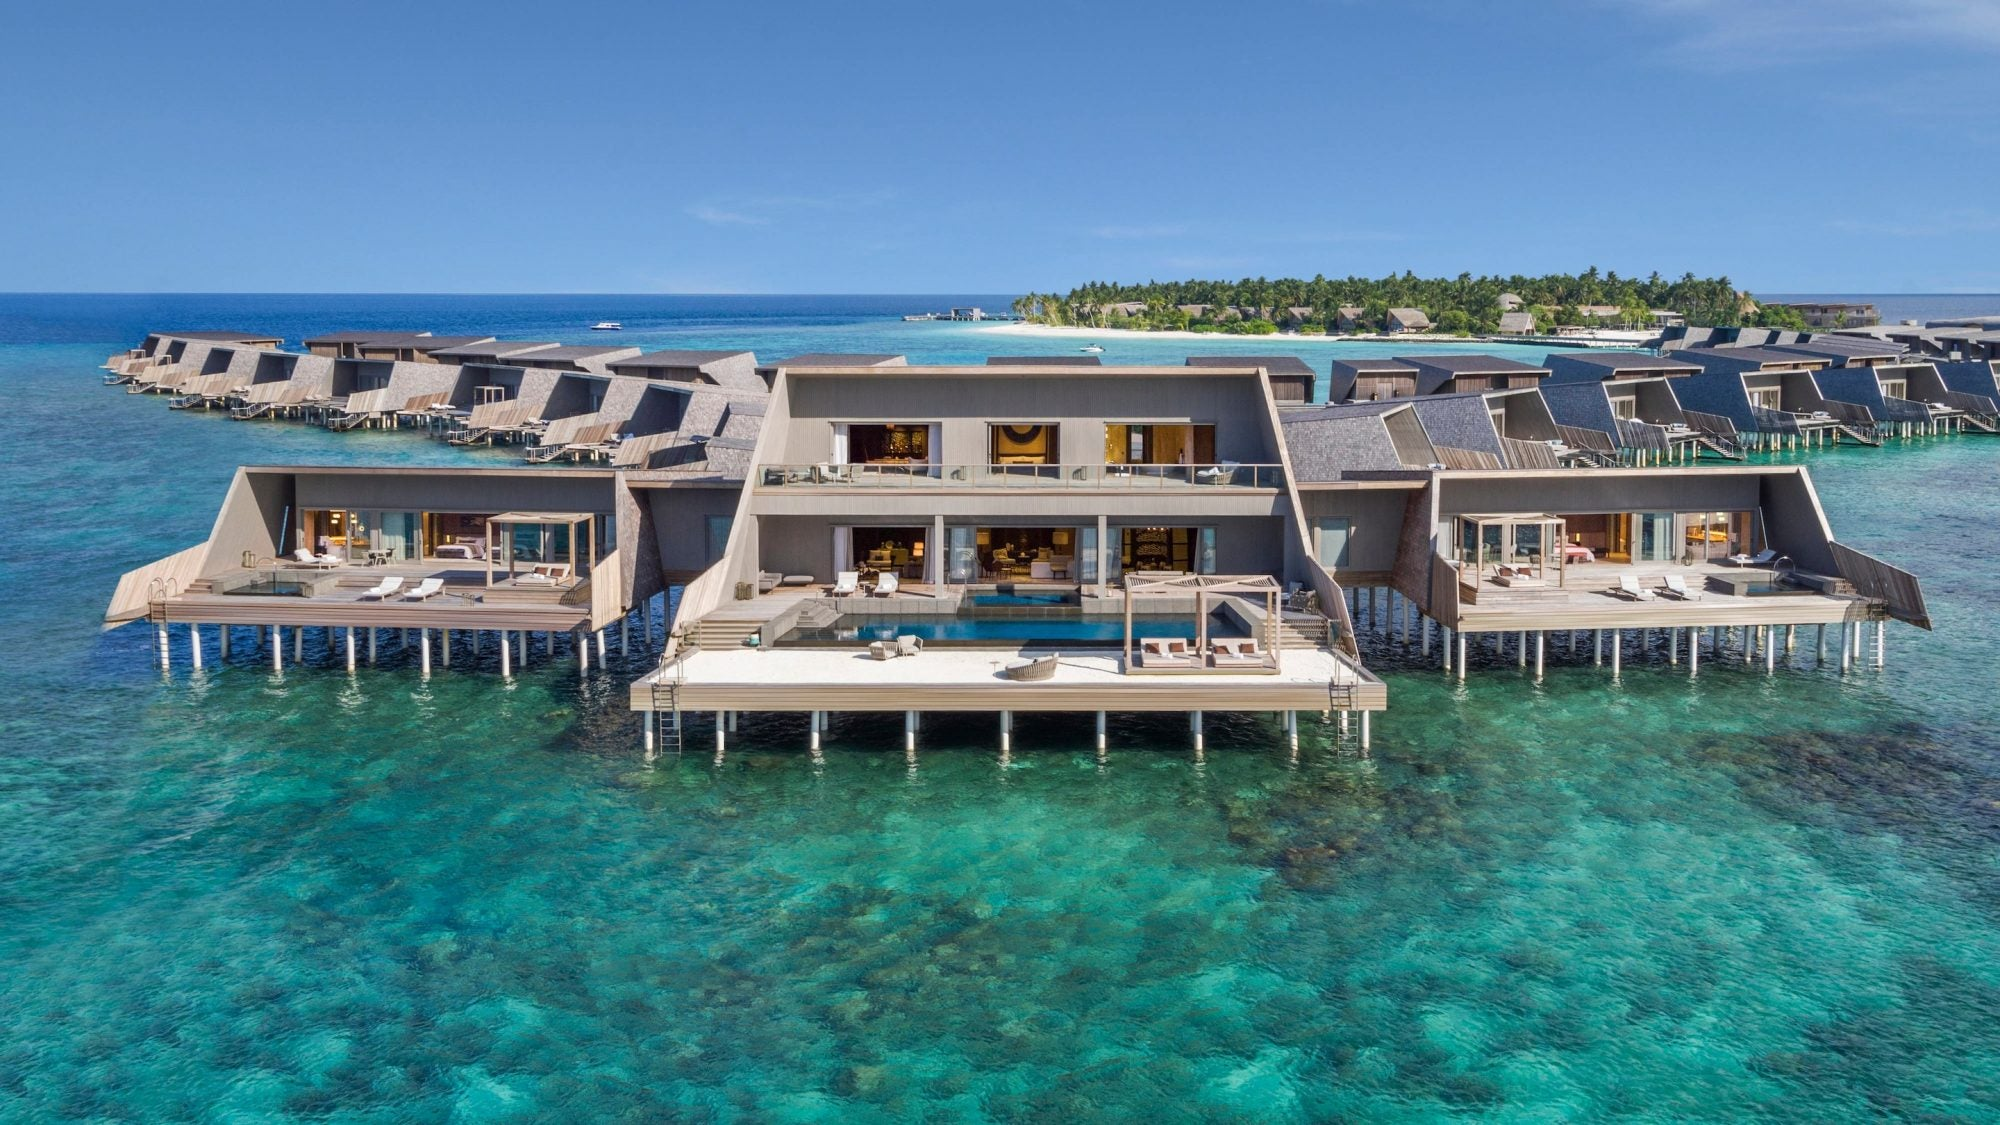 Get Ready to Book! 3 Weeks of Starwood Hotels at Lower Award Prices in December